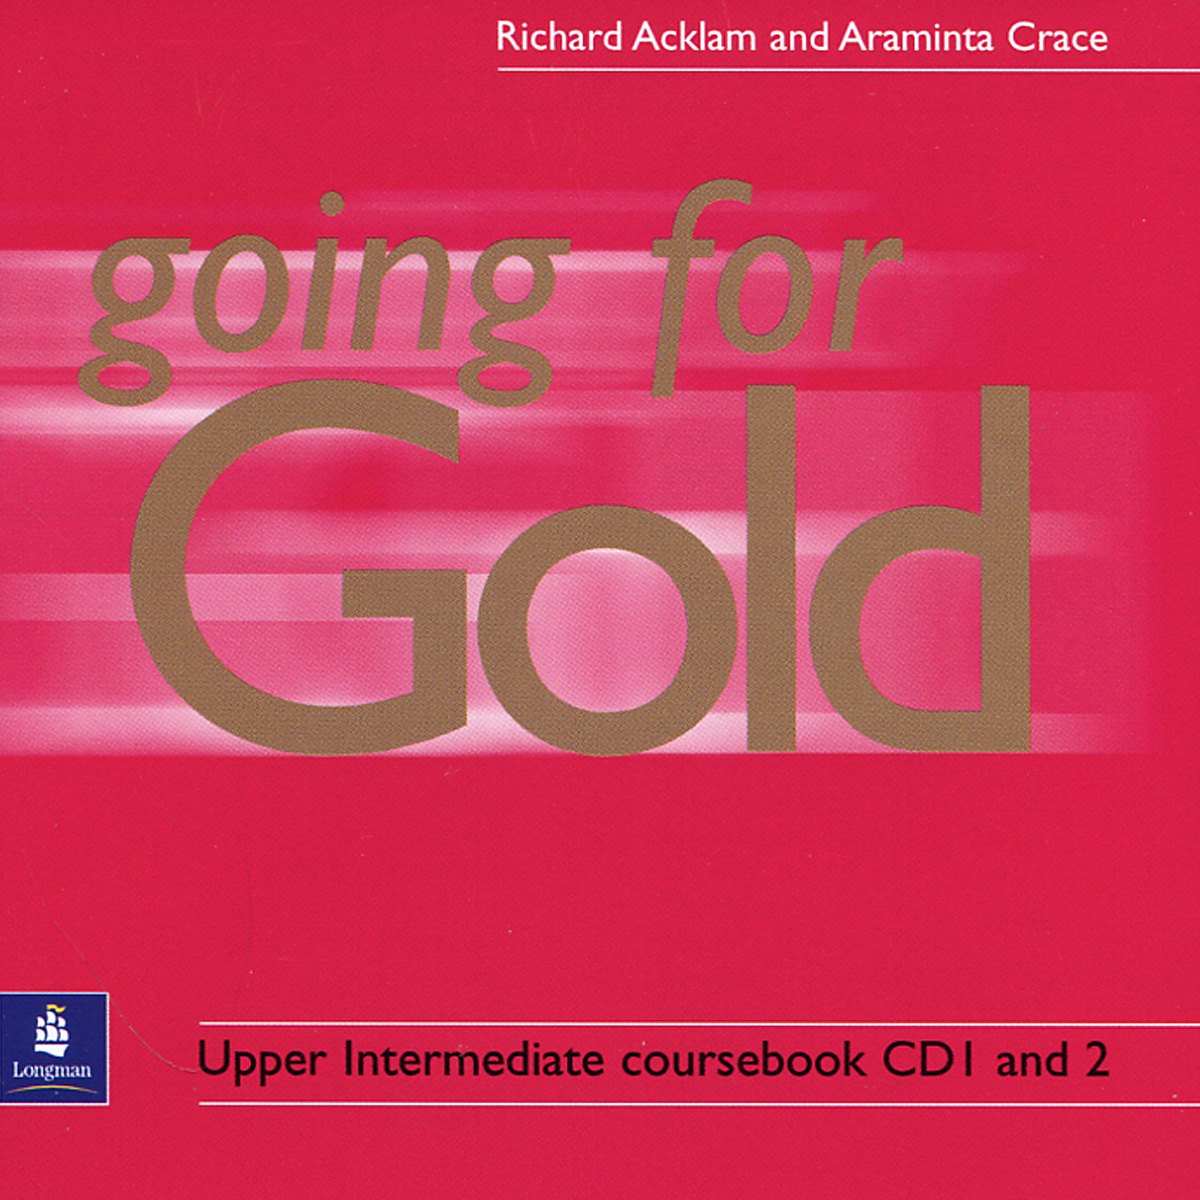 Going for Gold (аудиокурс на 2 CD) outcomes intermediate аудиокурс на 2 cd